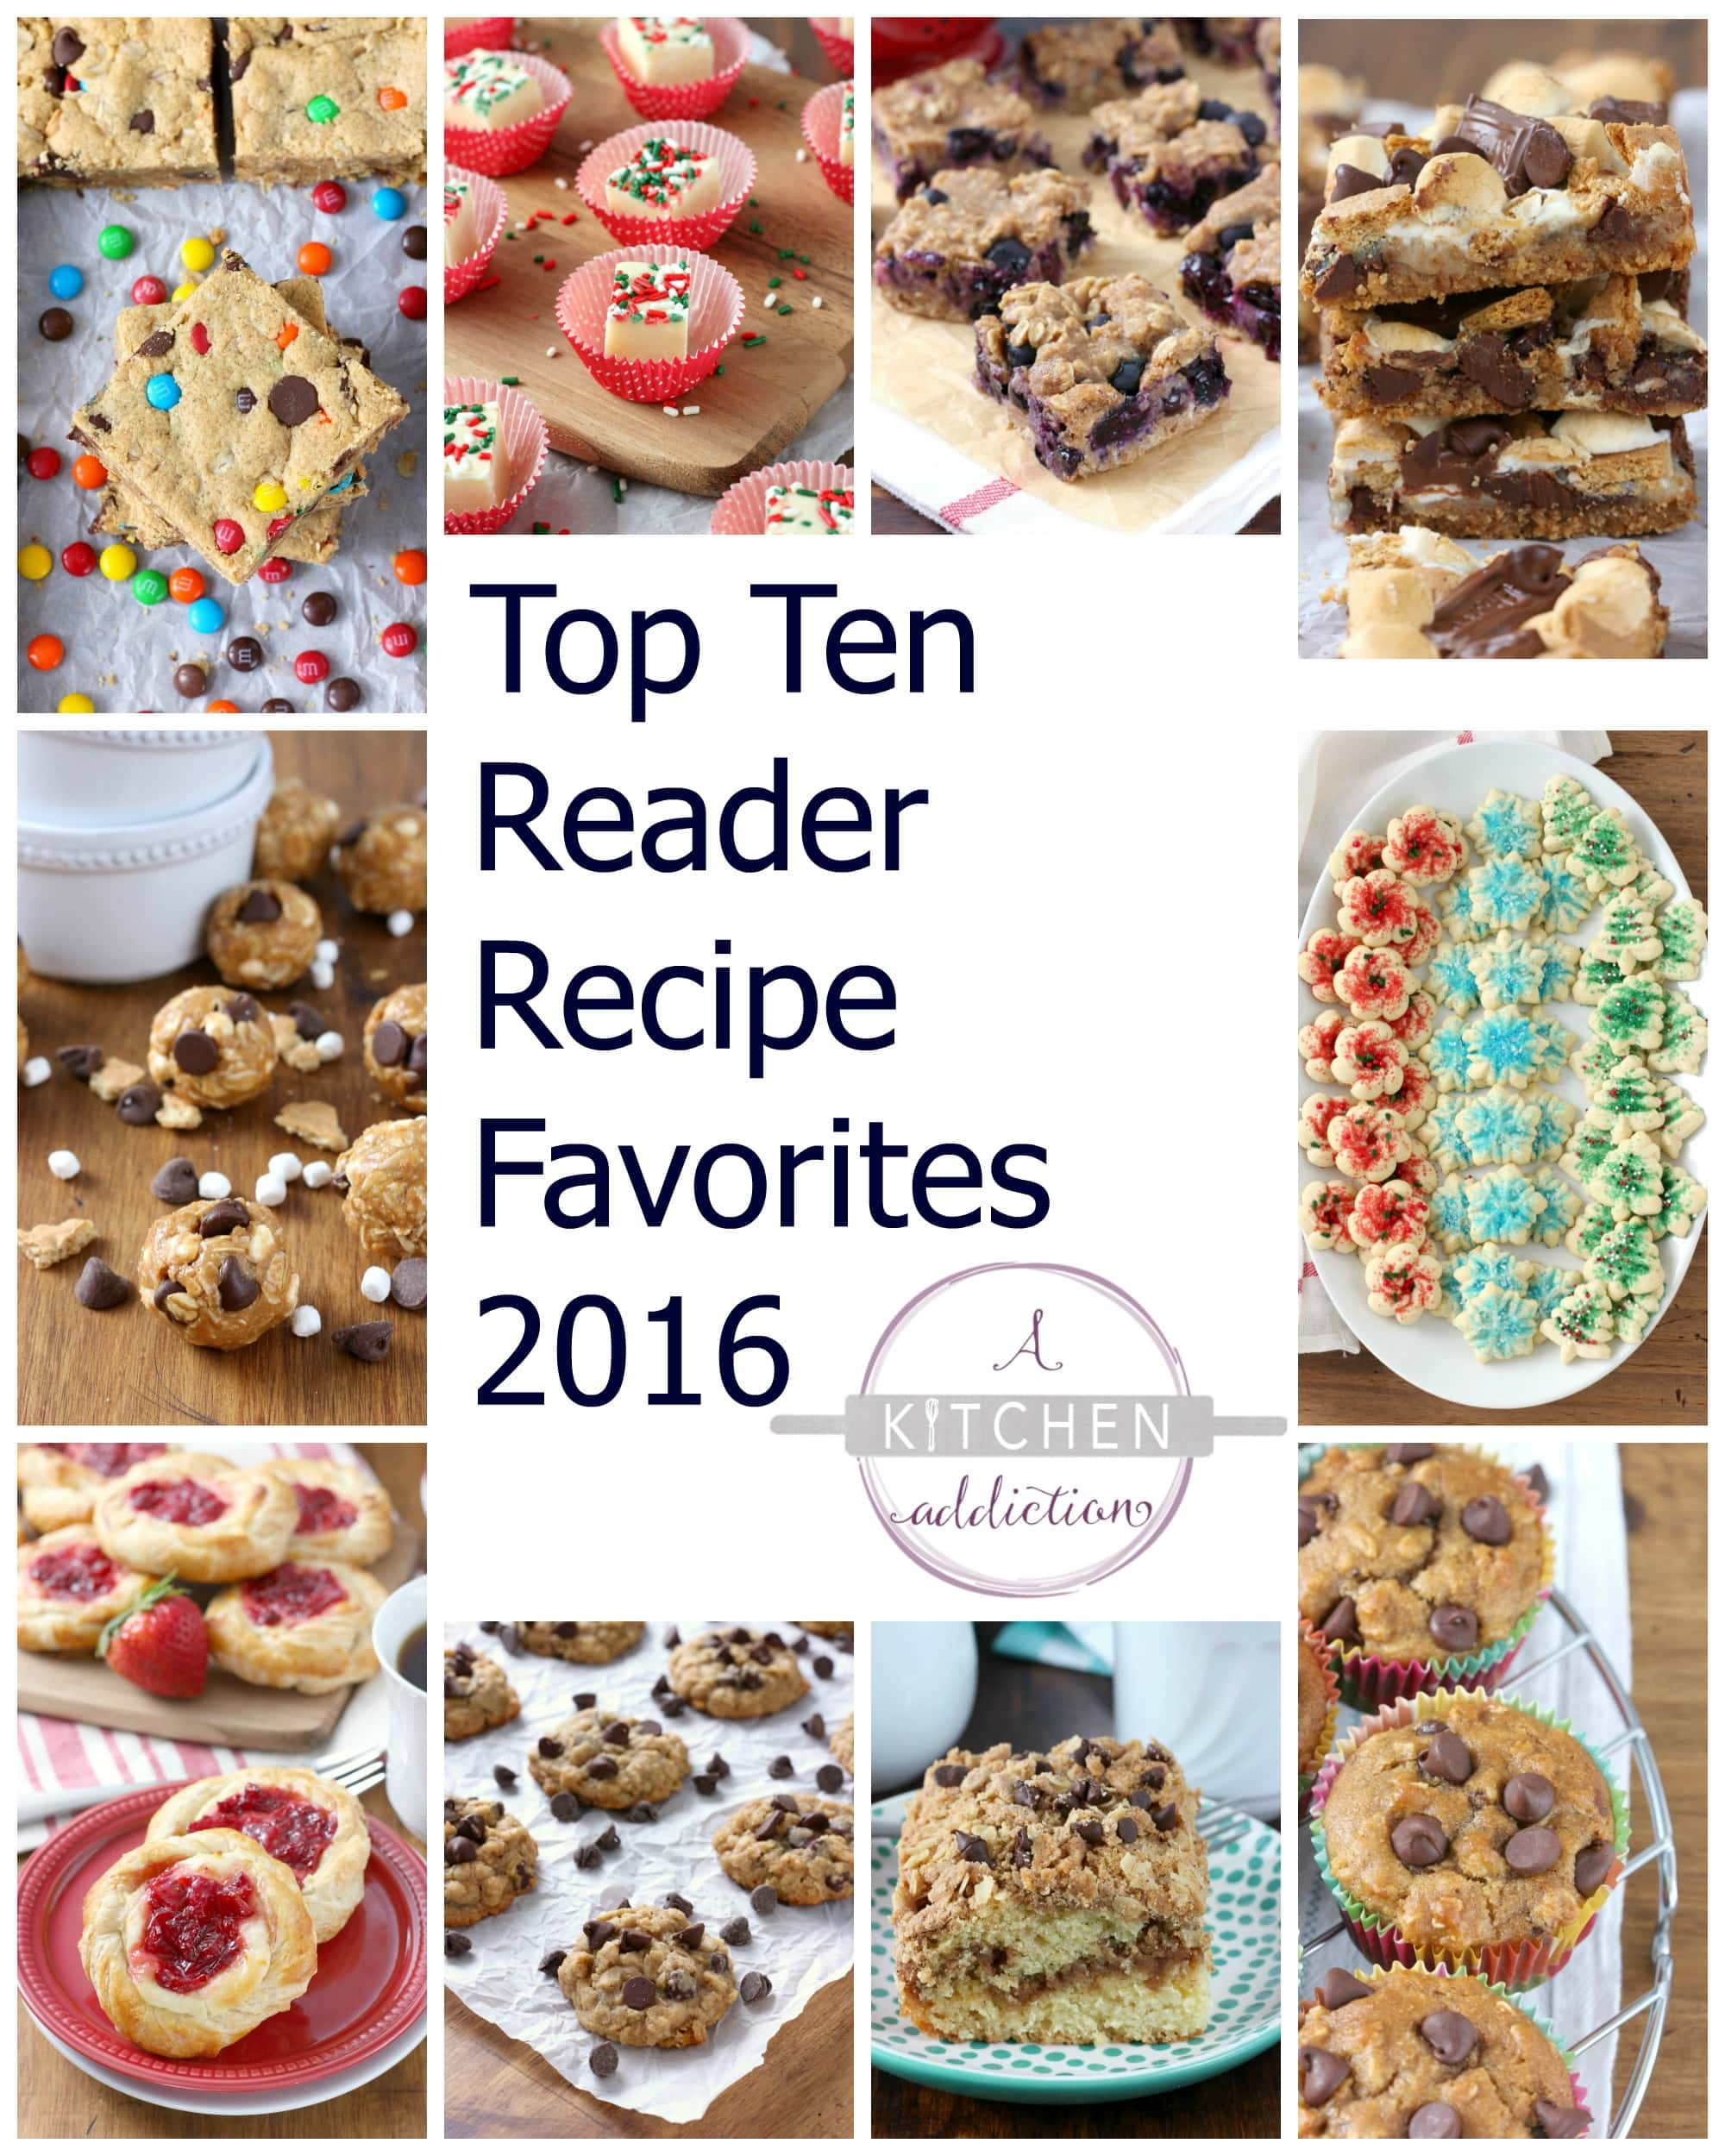 Top Ten Reader Recipe Favorites 2016